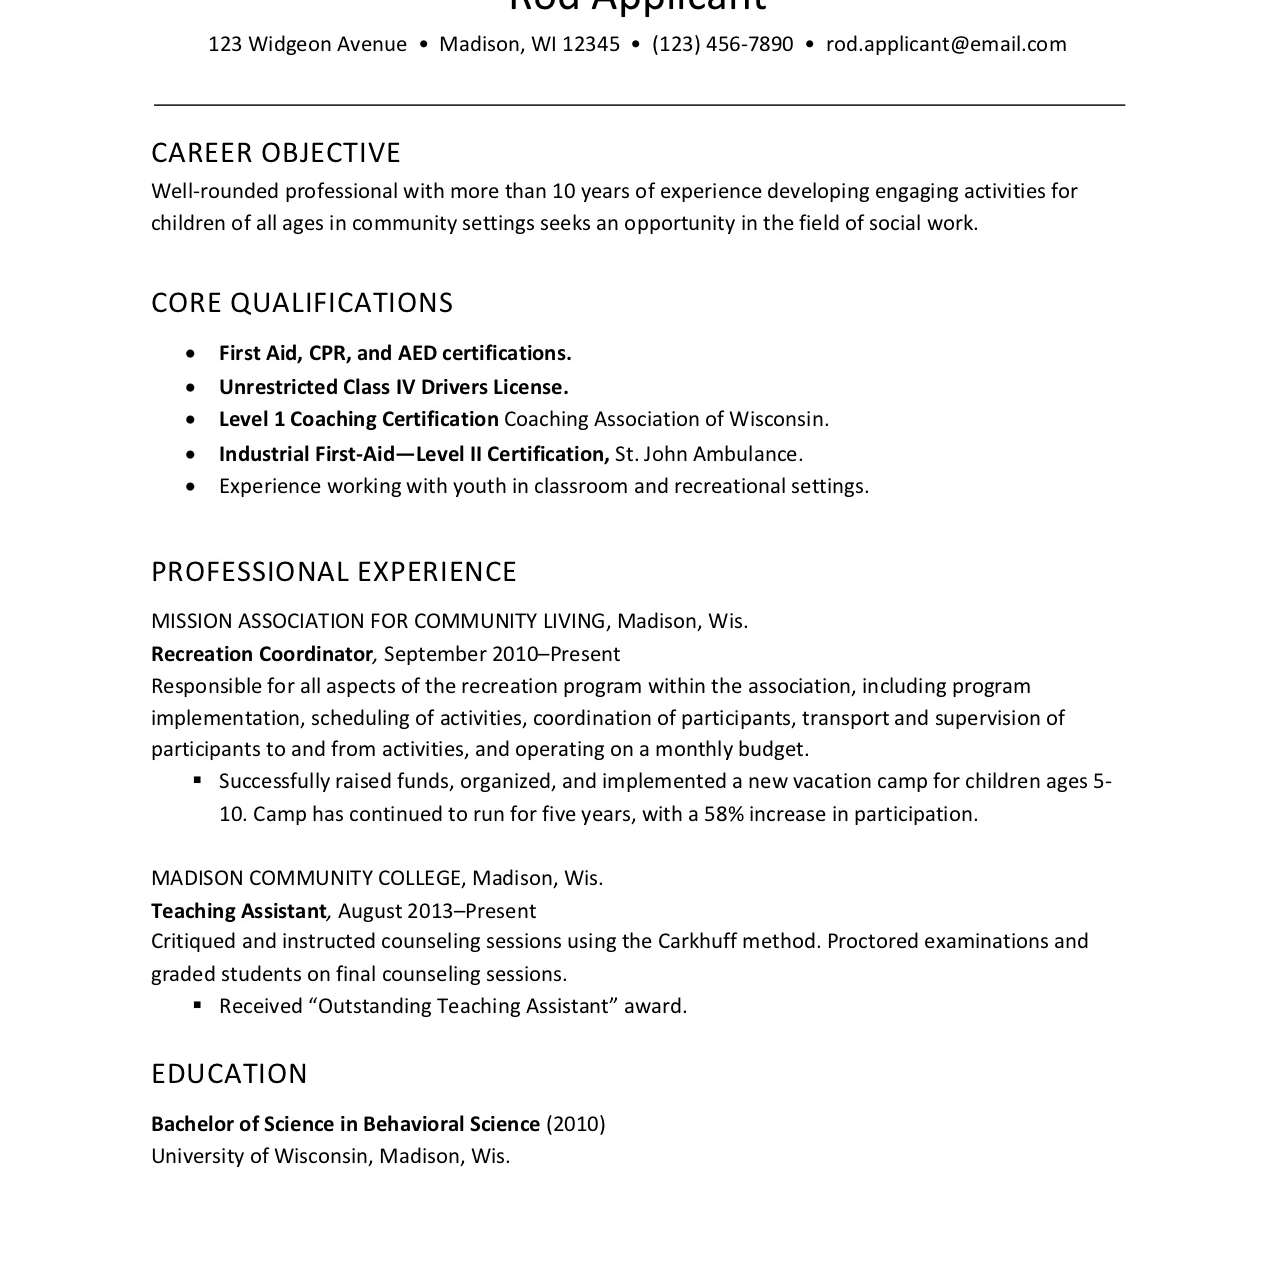 resume example for childcare social services worker child care sample word format Resume Child Care Resume Sample